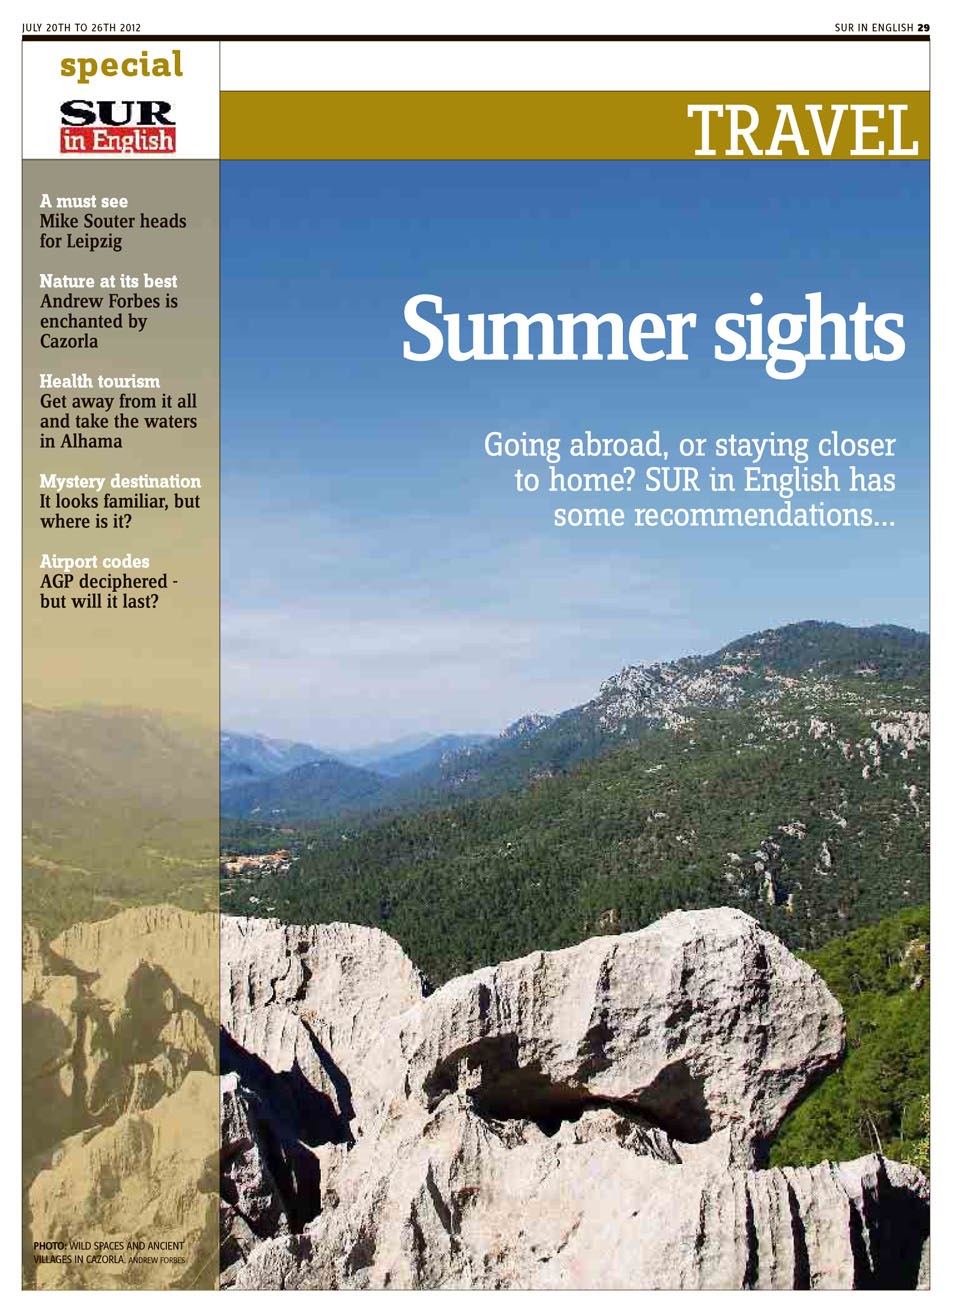 Andrew Forbes - Published Photogarphy - Cazorla natural Park